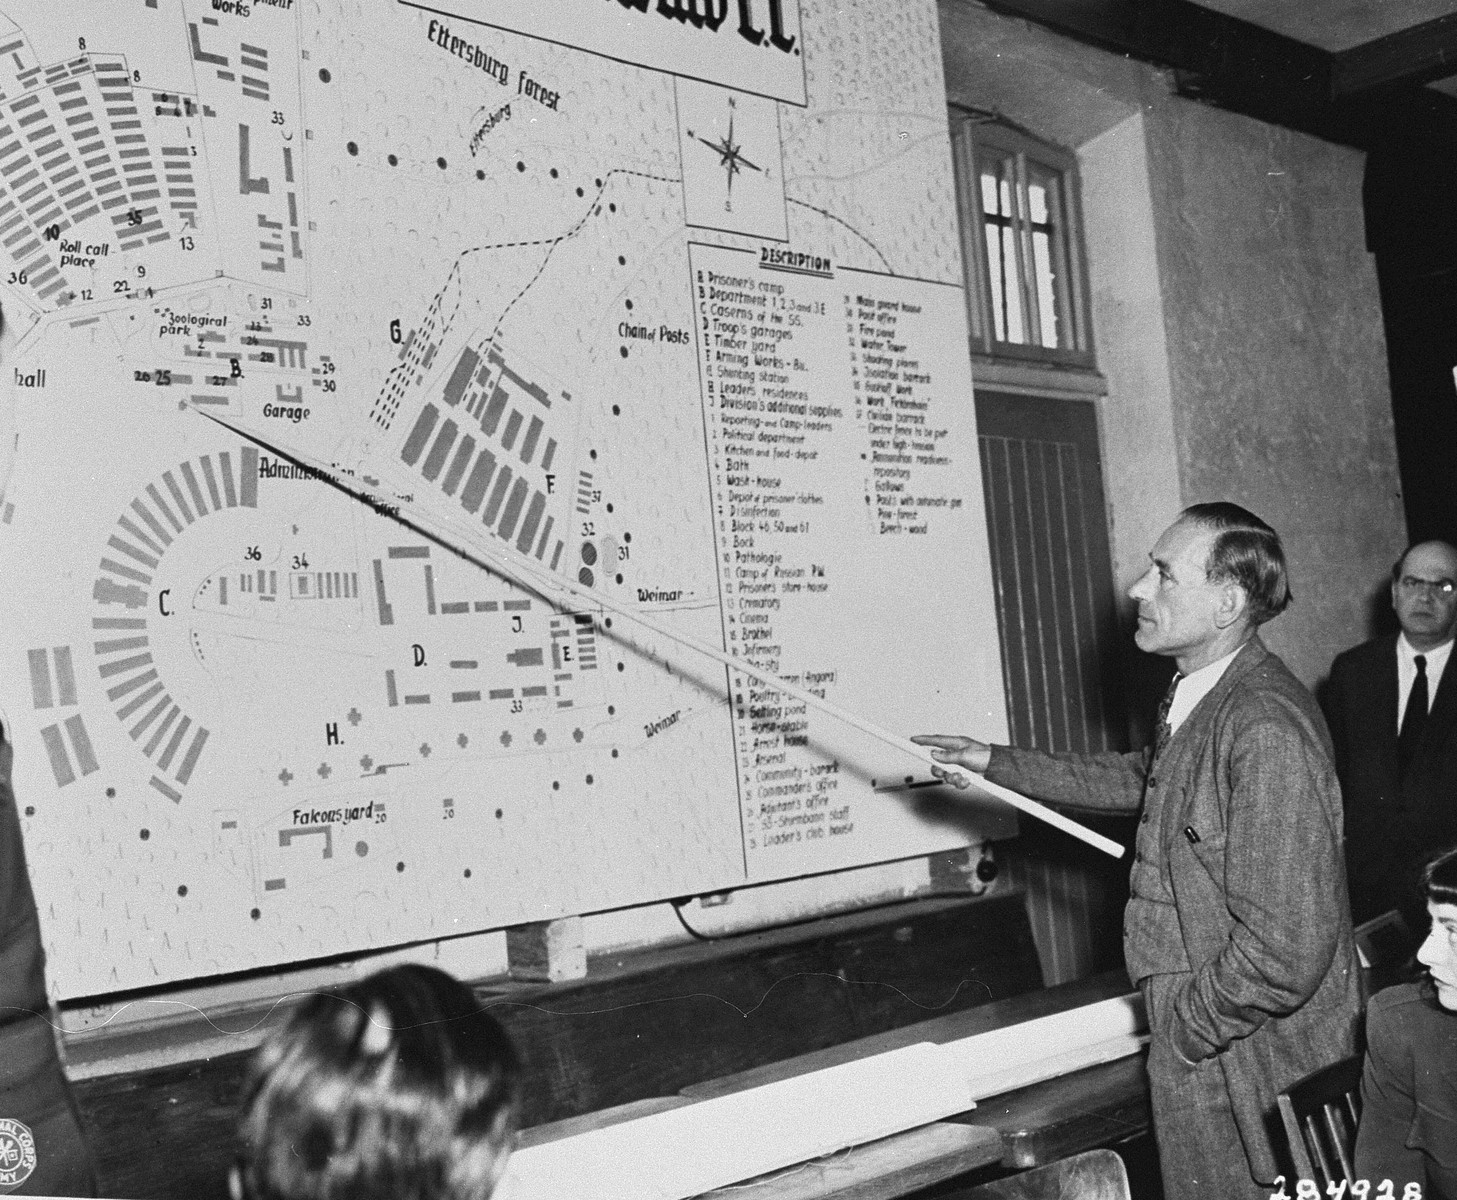 Mr. Blank, a German civilian, identifies the spot on a diagram of the camp where he saw Russian prisoners of war being taken away to be shot.  Mr Blank was a witness for the prosecution at the trial of former camp personnel and prisoners from Buchenwald.